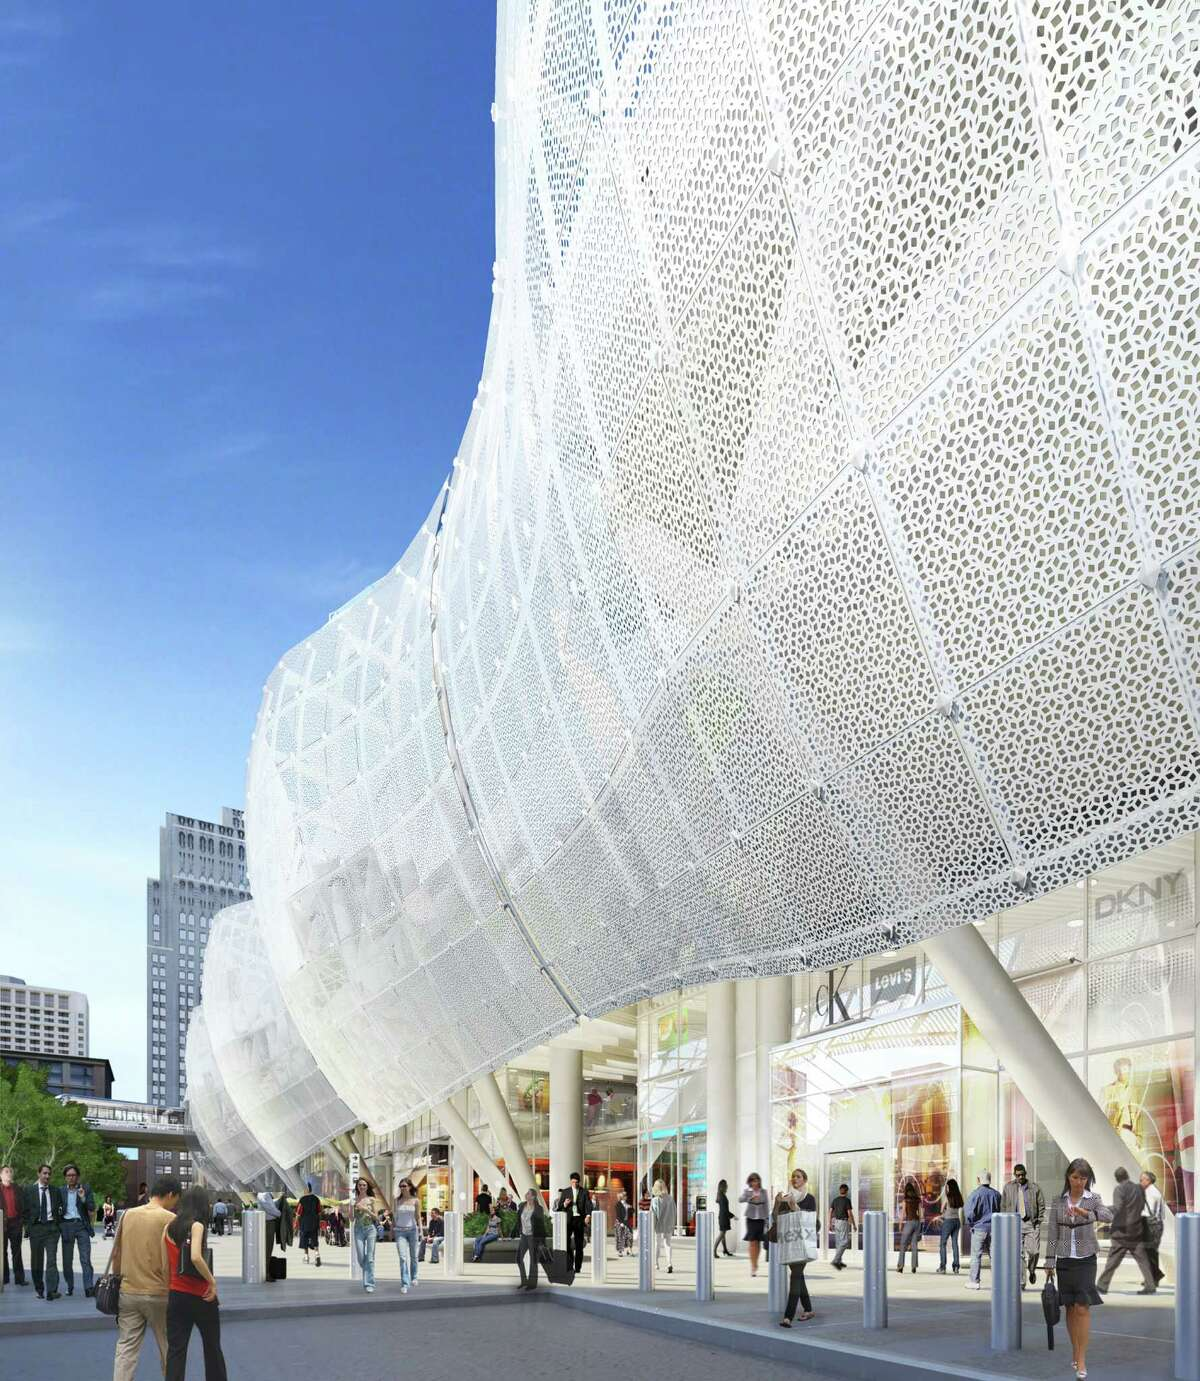 Architects are proposing to add a perforated metal skin to the Transbay Transit Center set to open in 2017. This is a view along Natoma Street of one of the potential cladding systems. It would replace an all-glass skin.